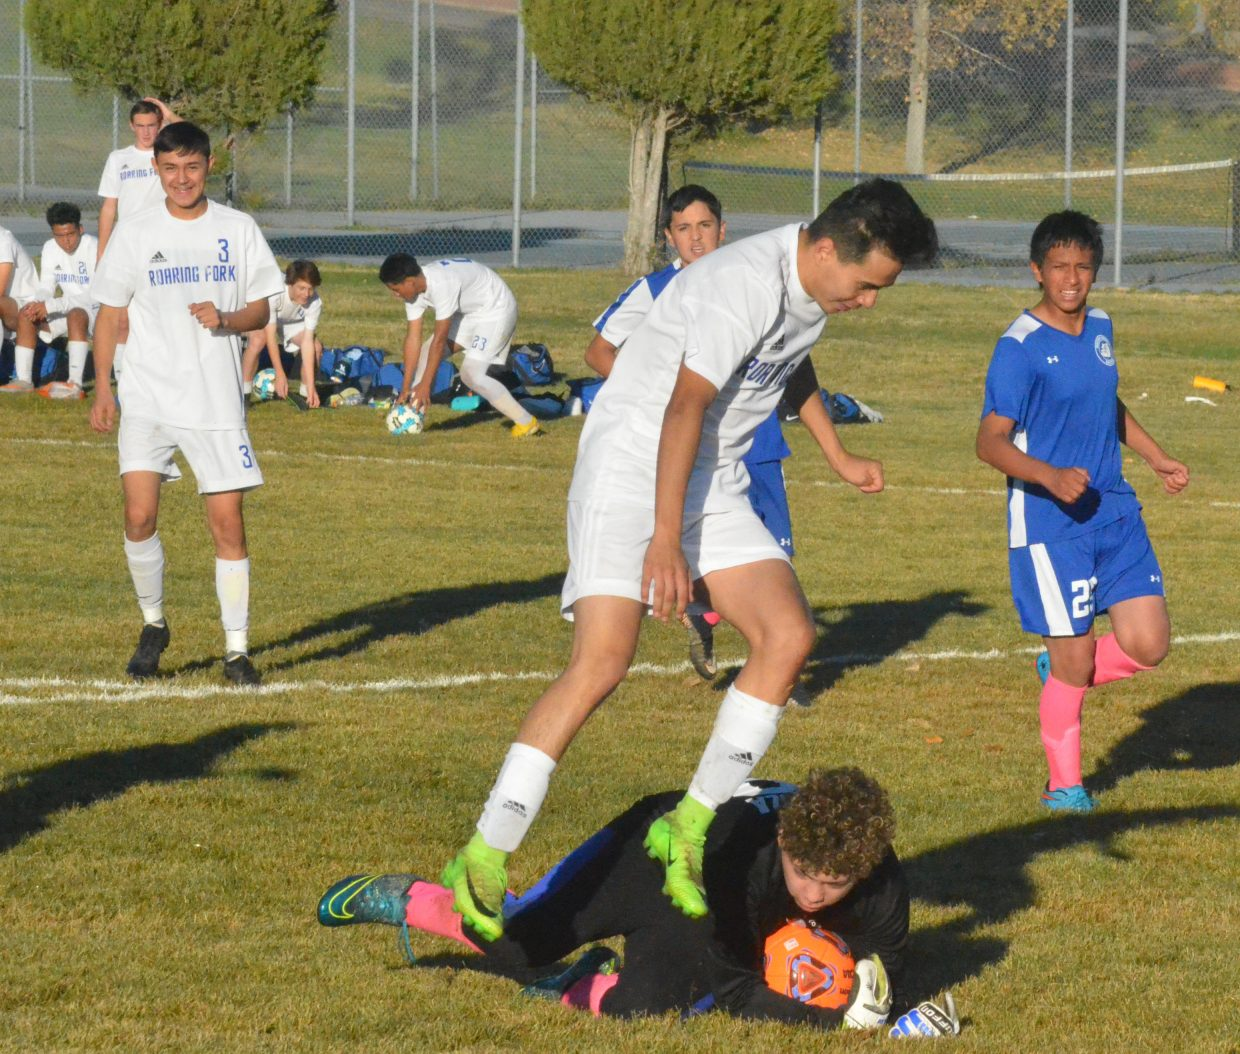 Moffat County High School's goalie Miguel Zaragoza dives on the ball against Roaring Fork.